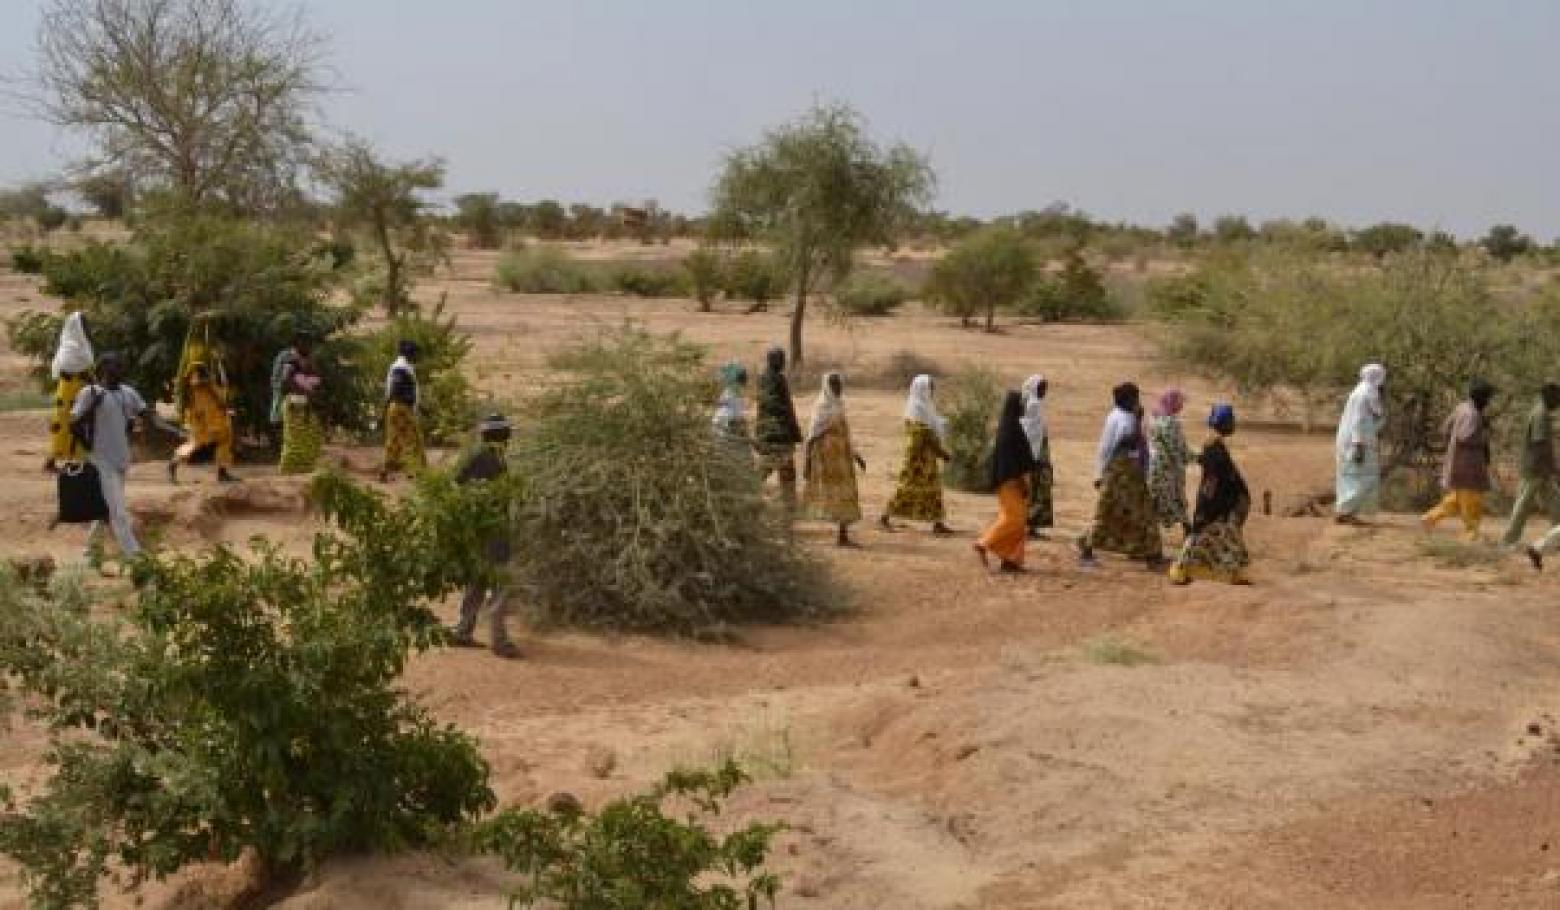 IUCN, https://www.iucn.org/theme/ecosystem-management/our-work/environment-and-disasters/ecosystems-protecting-infrastructure-and-communities-epic/burkina-faso